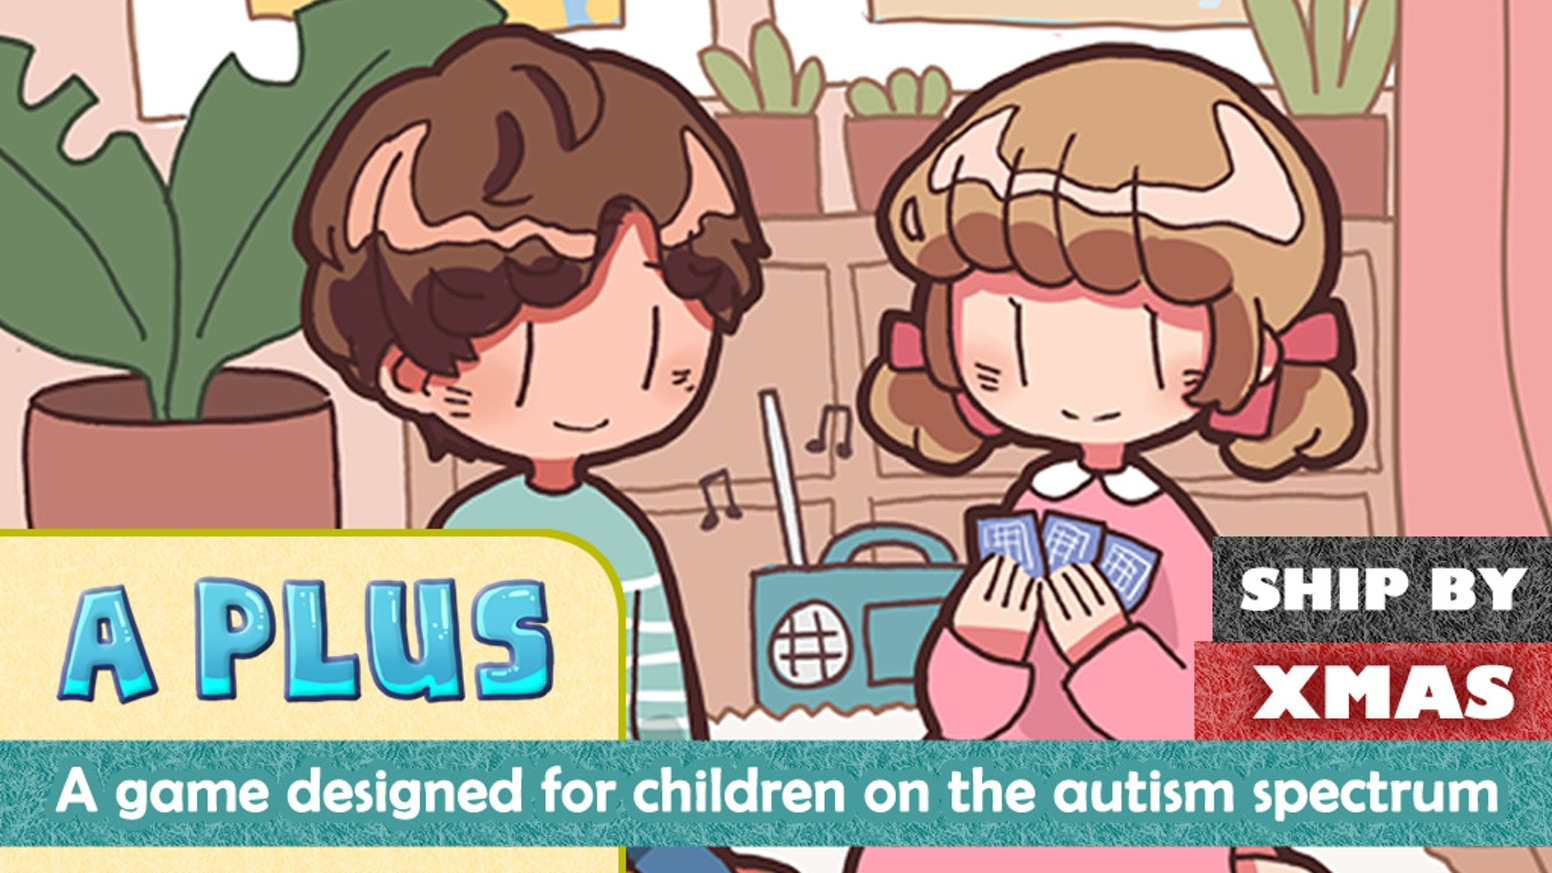 A game designed to reinforce and improve social skills for children on the autism spectrum.